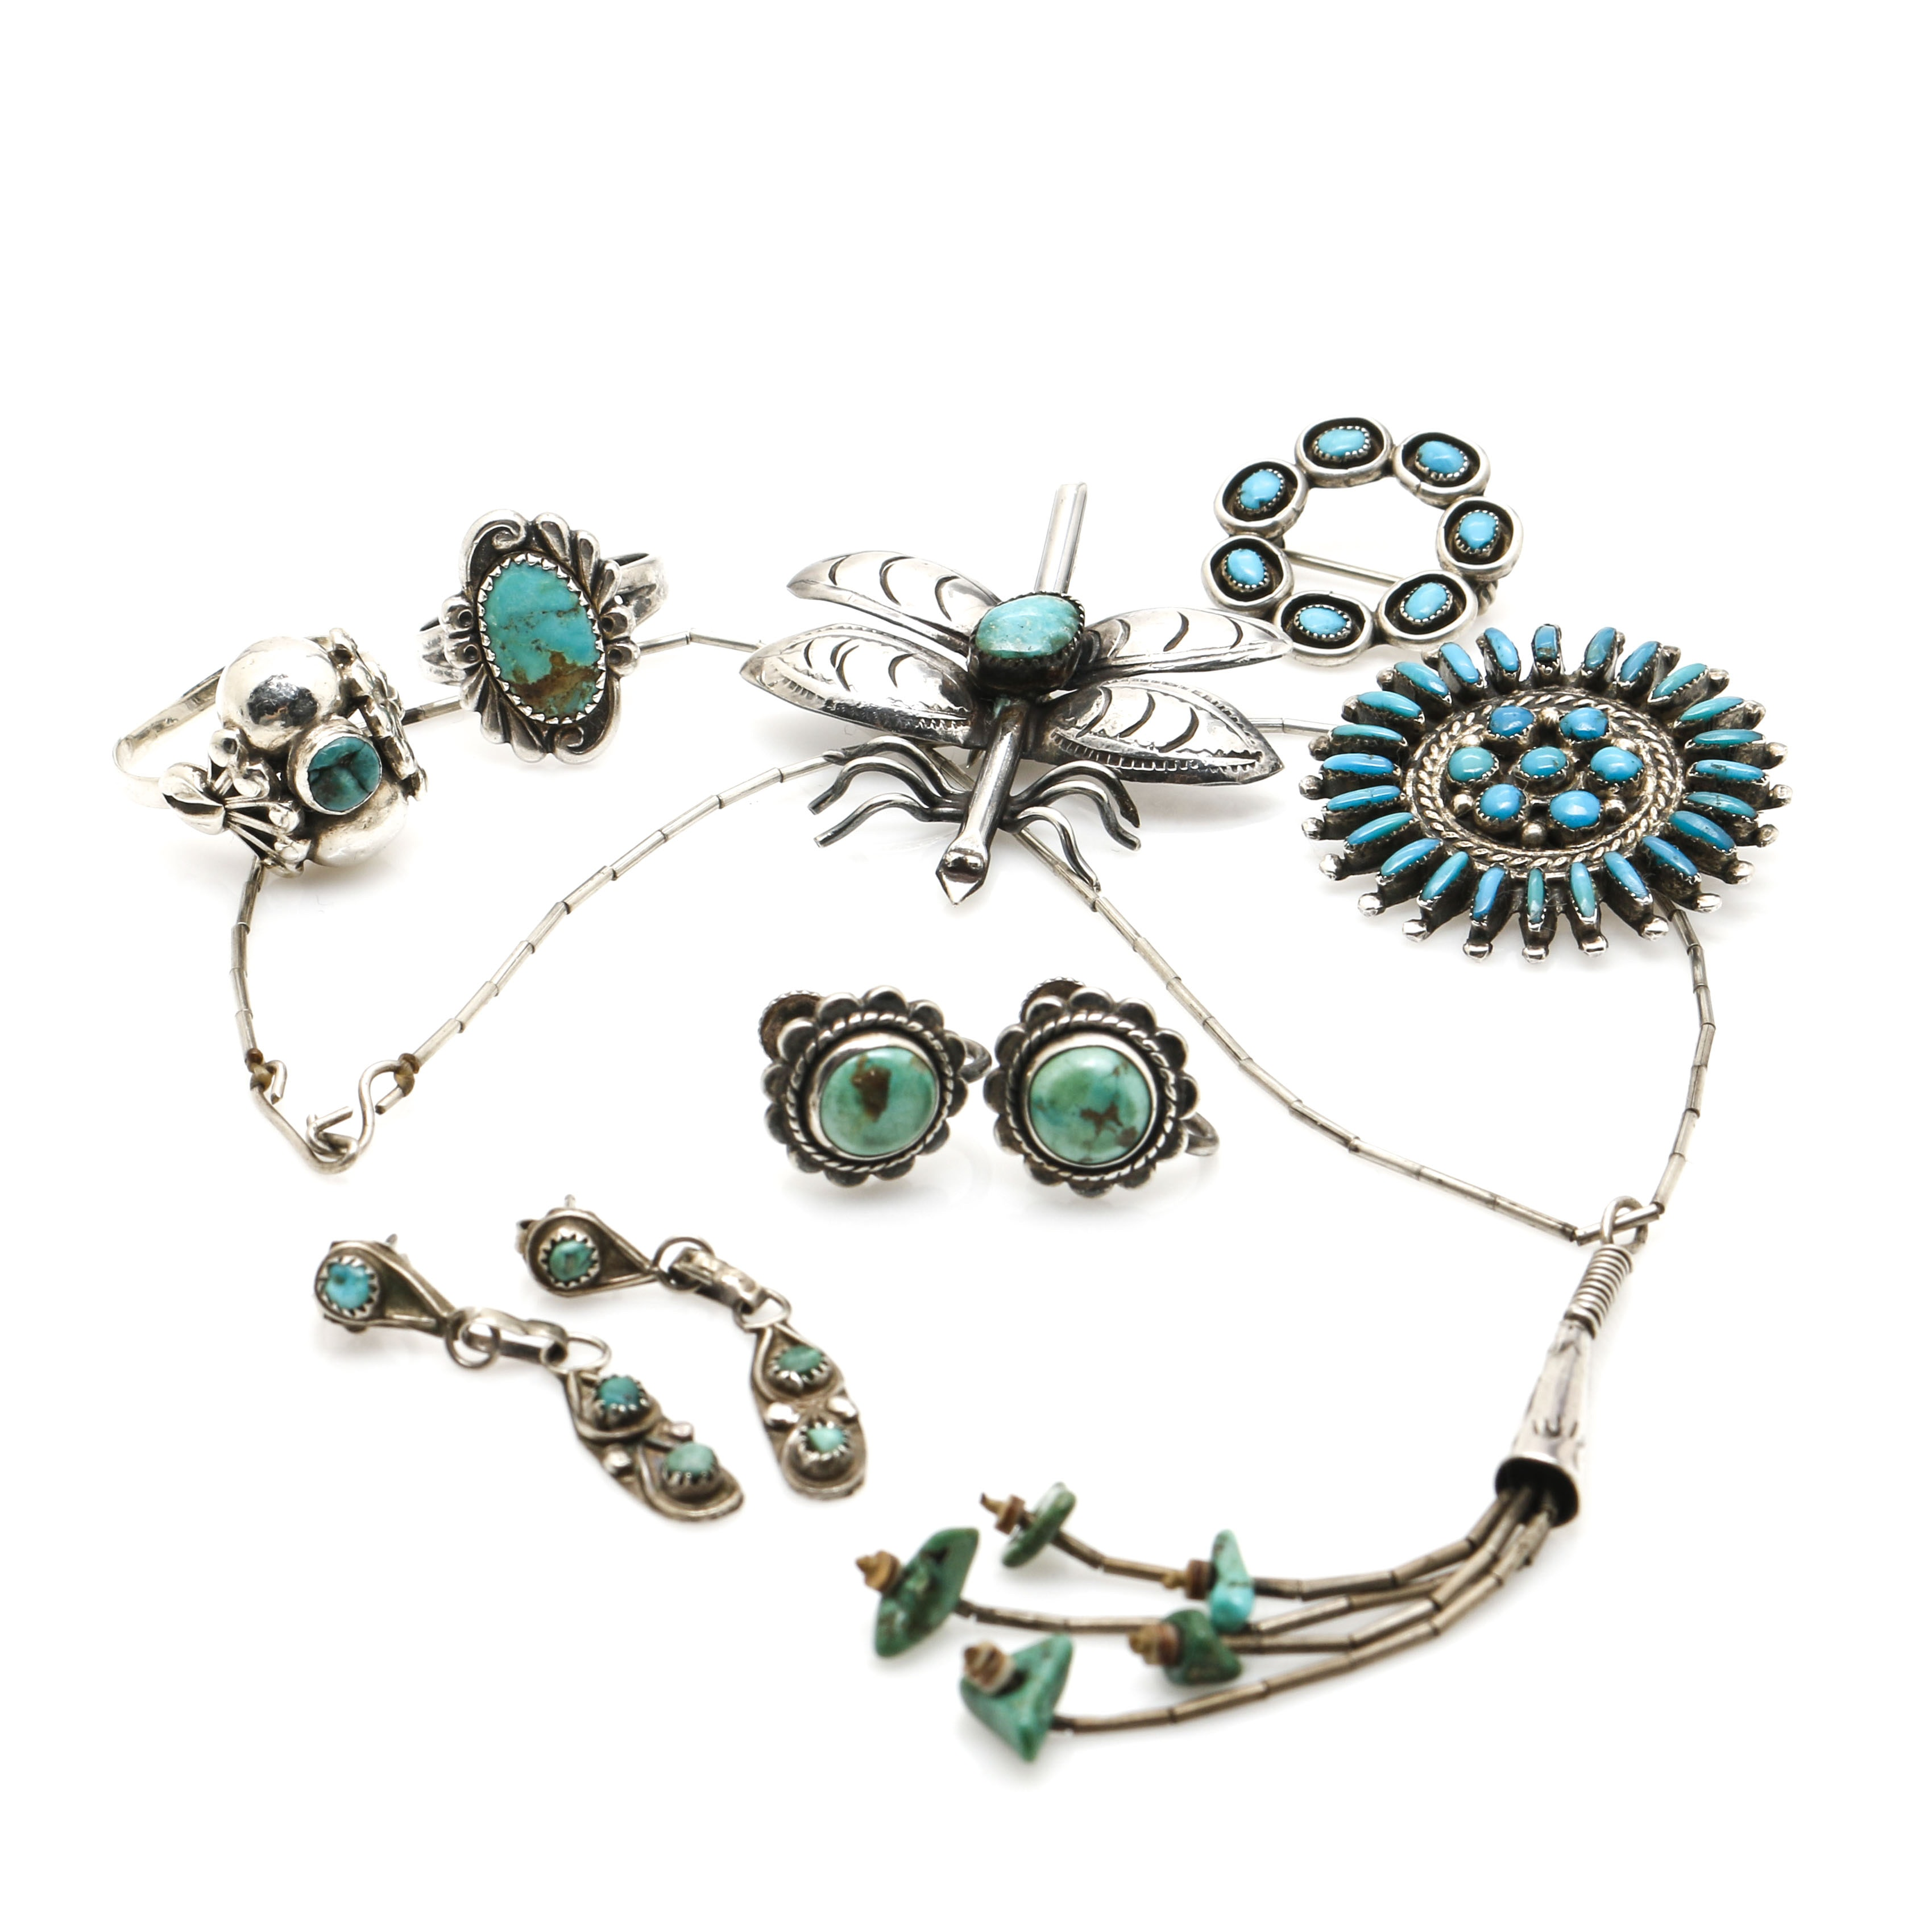 Southwestern Style Sterling Silver Turquoise Jewelry Featuring Bell Trading Post